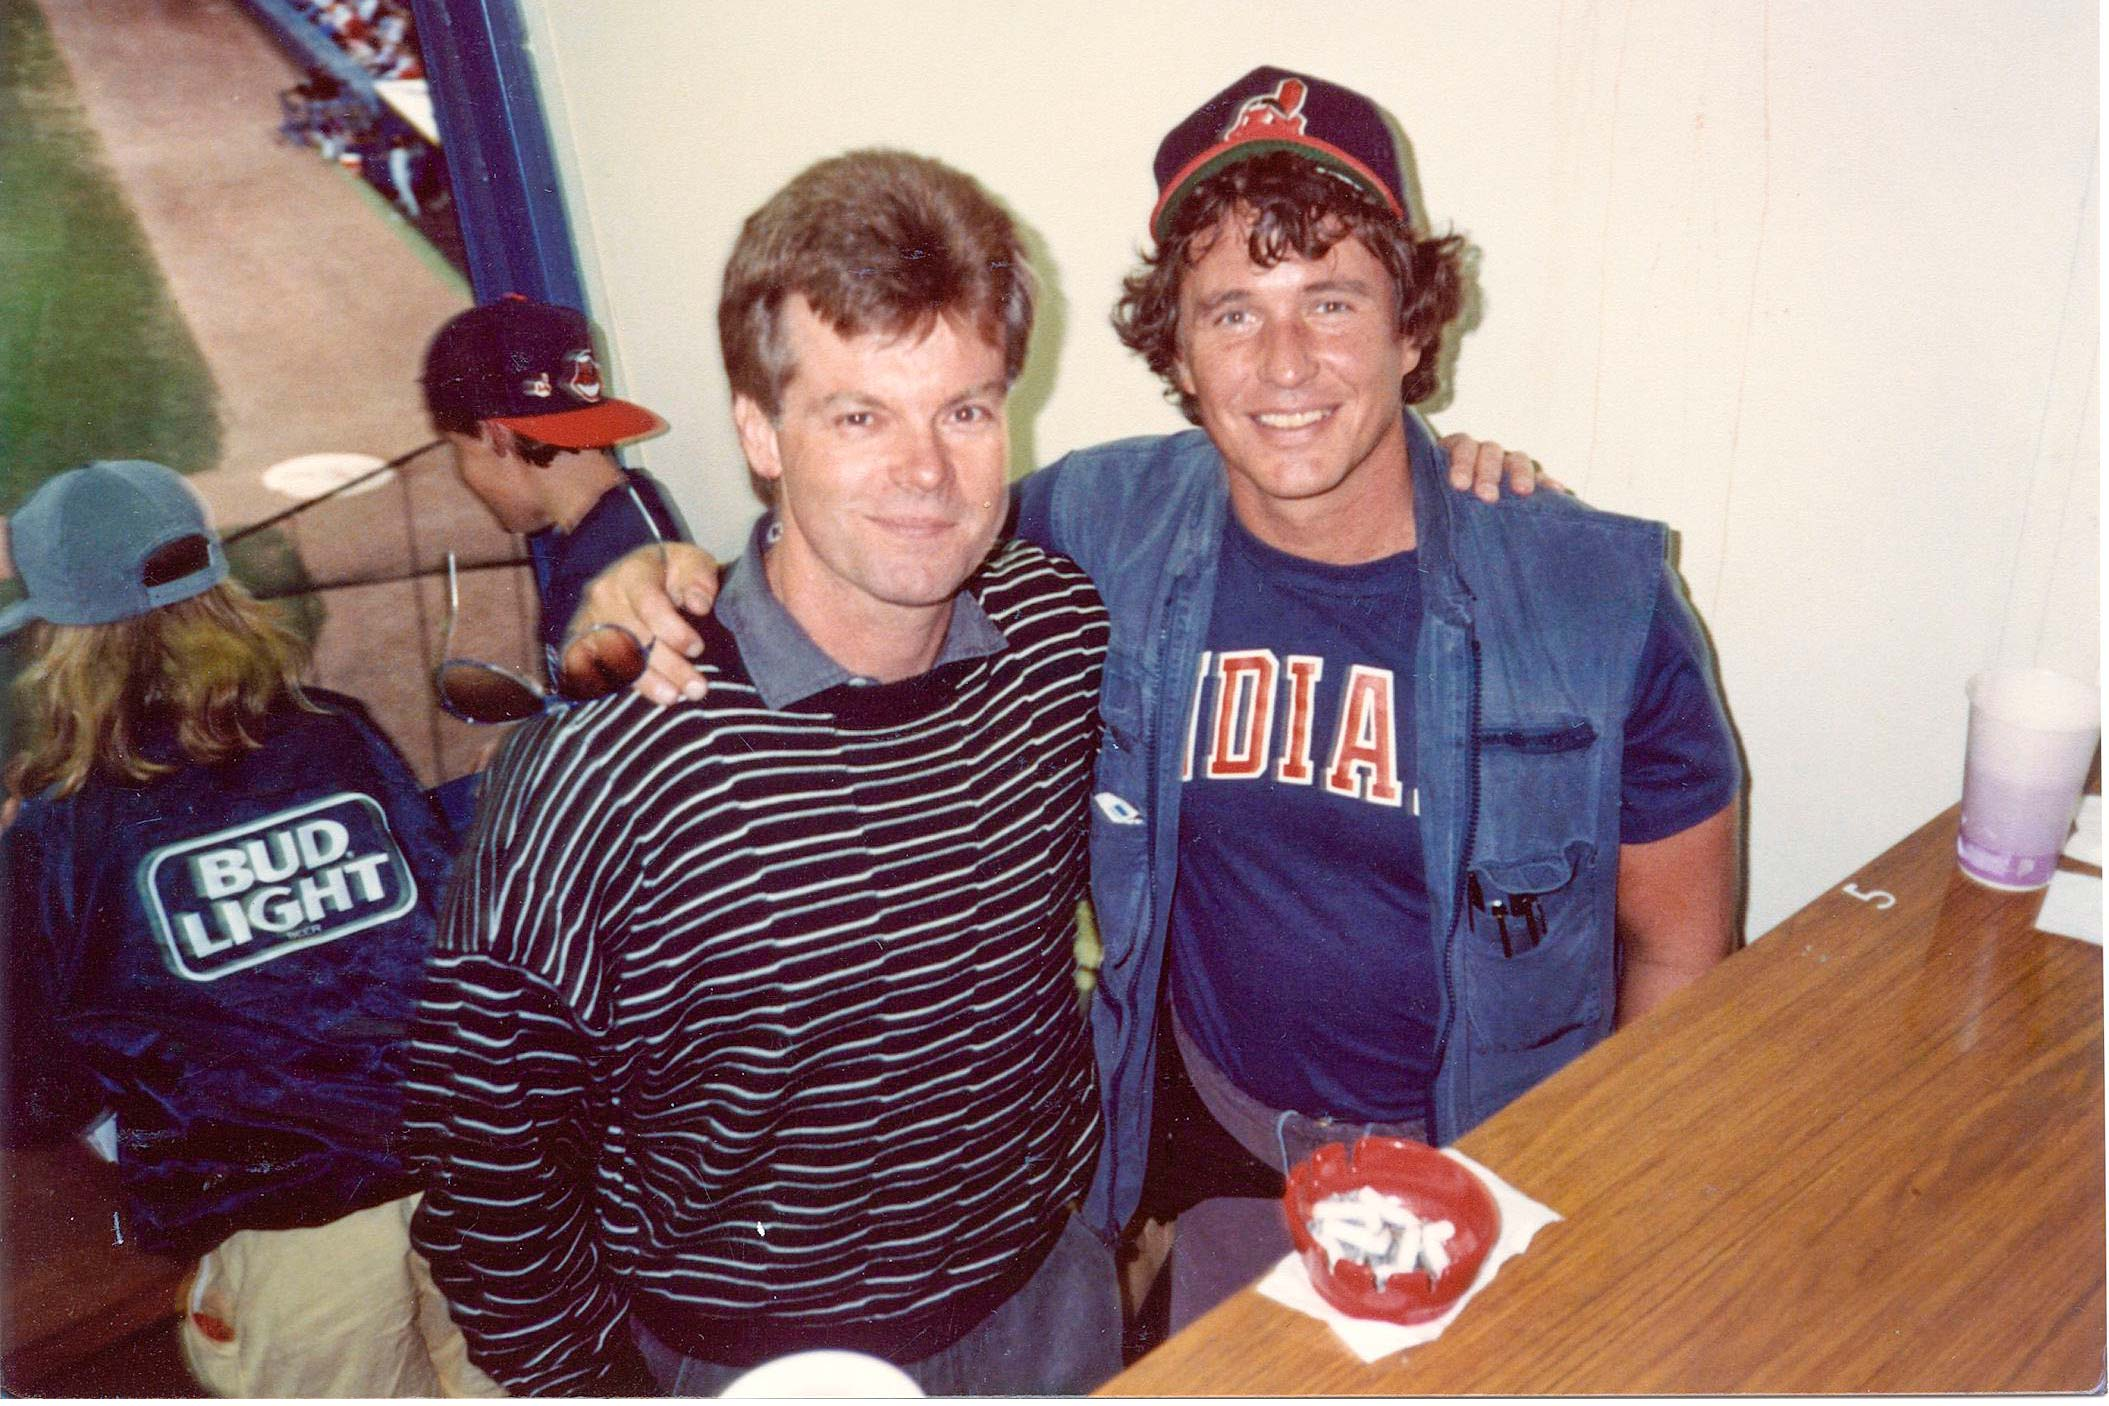 David S. Ward and Tom Berenger sitting in press box of Milaukee Stadium during filming of the movie Major League